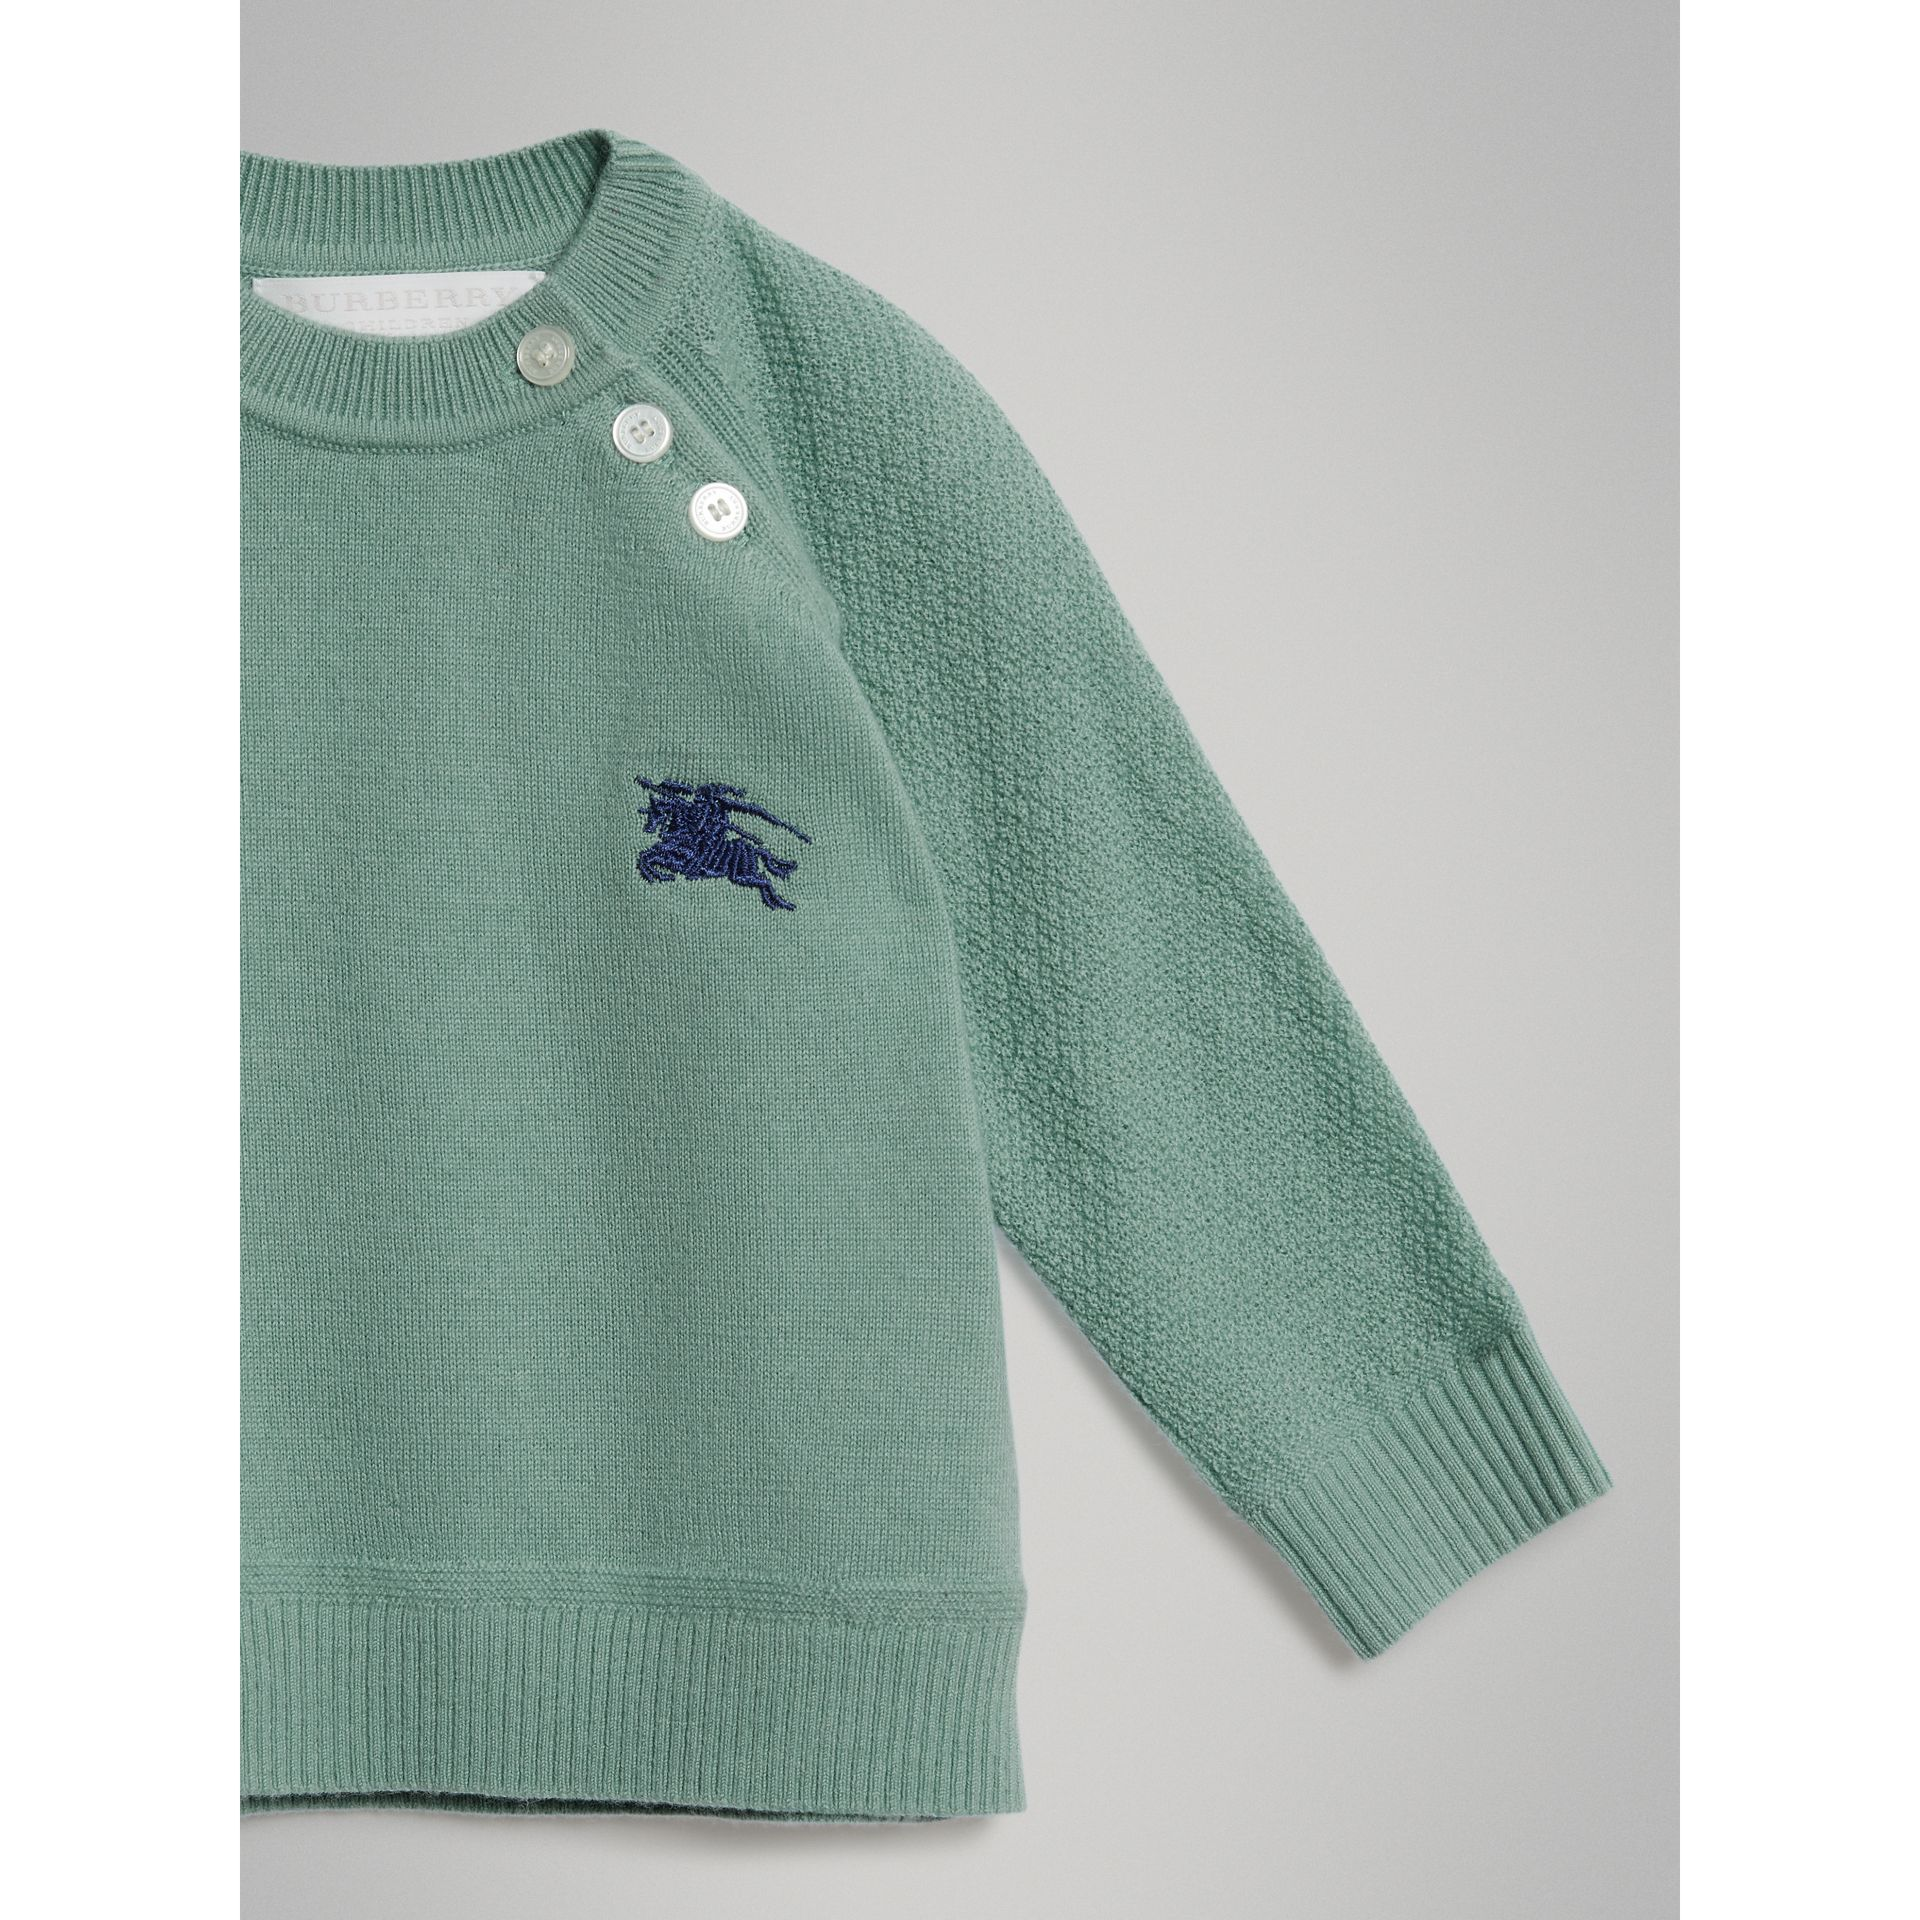 Contrast Motif Cashmere Sweater in Dusty Mint Melange - Children | Burberry - gallery image 4